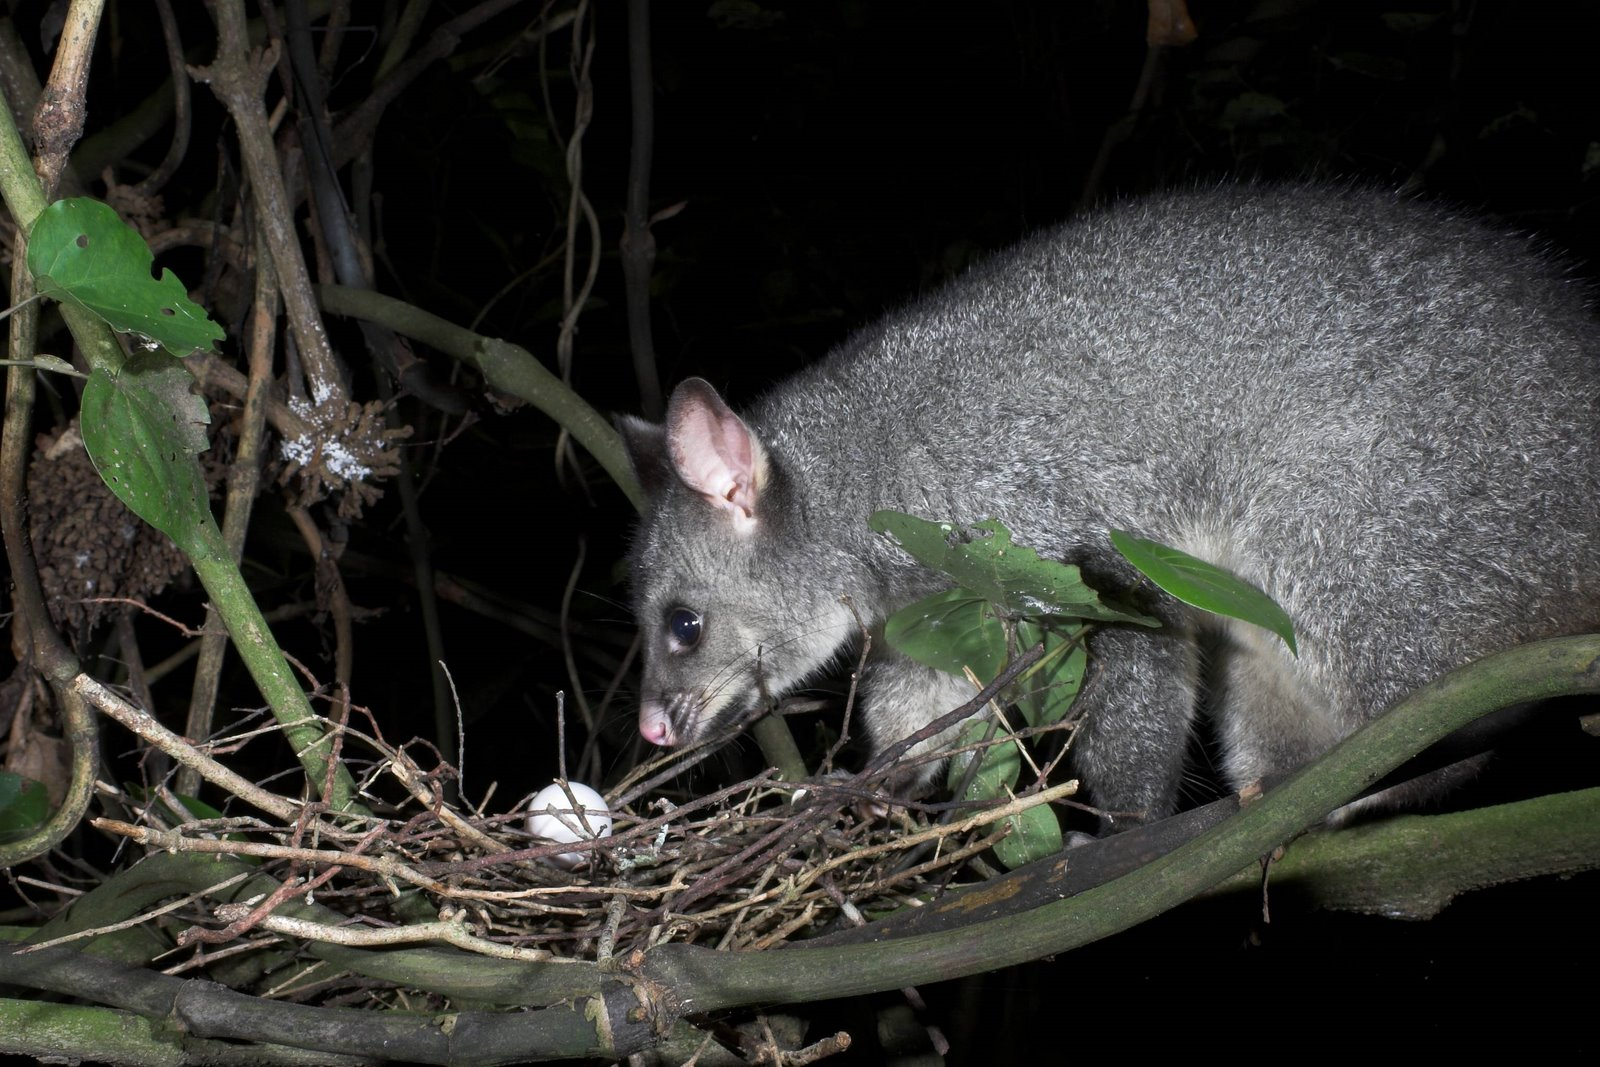 Predator possum approaching a bird's egg in the nest